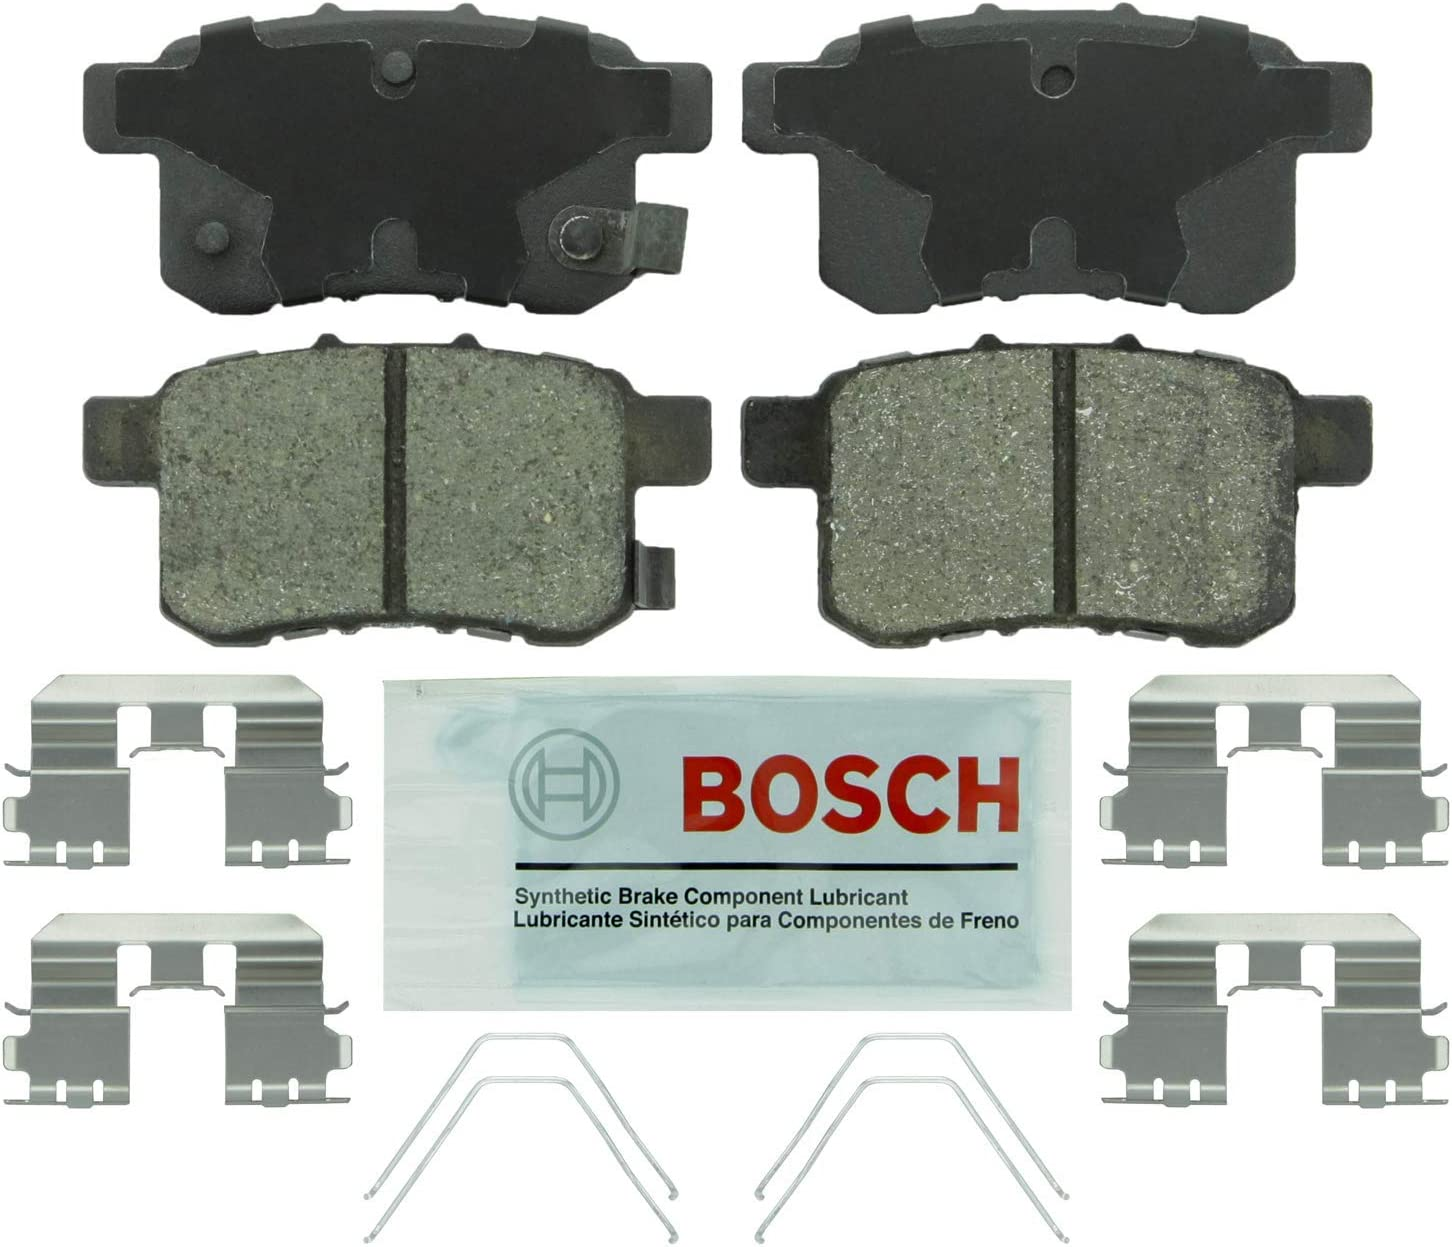 REAR Bosch BE1451H Blue Disc Brake Pad Set with Hardware for 2009-14 Acura TSX and 2008-15 Honda Accord